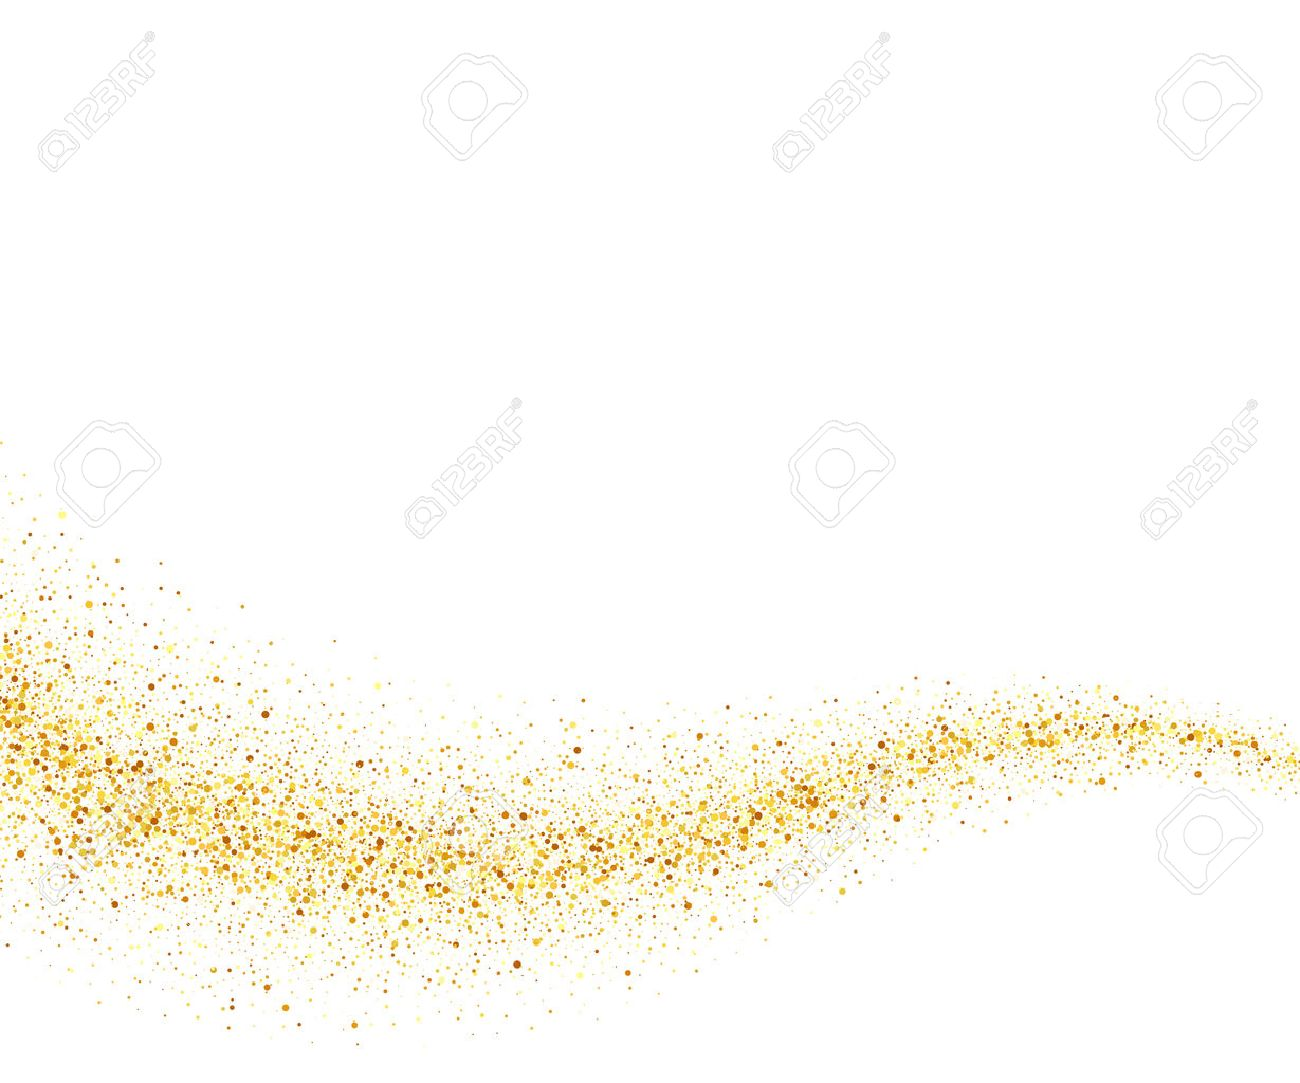 Vector gold glitter wave abstract background, golden sparkles on white background, vip design template - 50855379